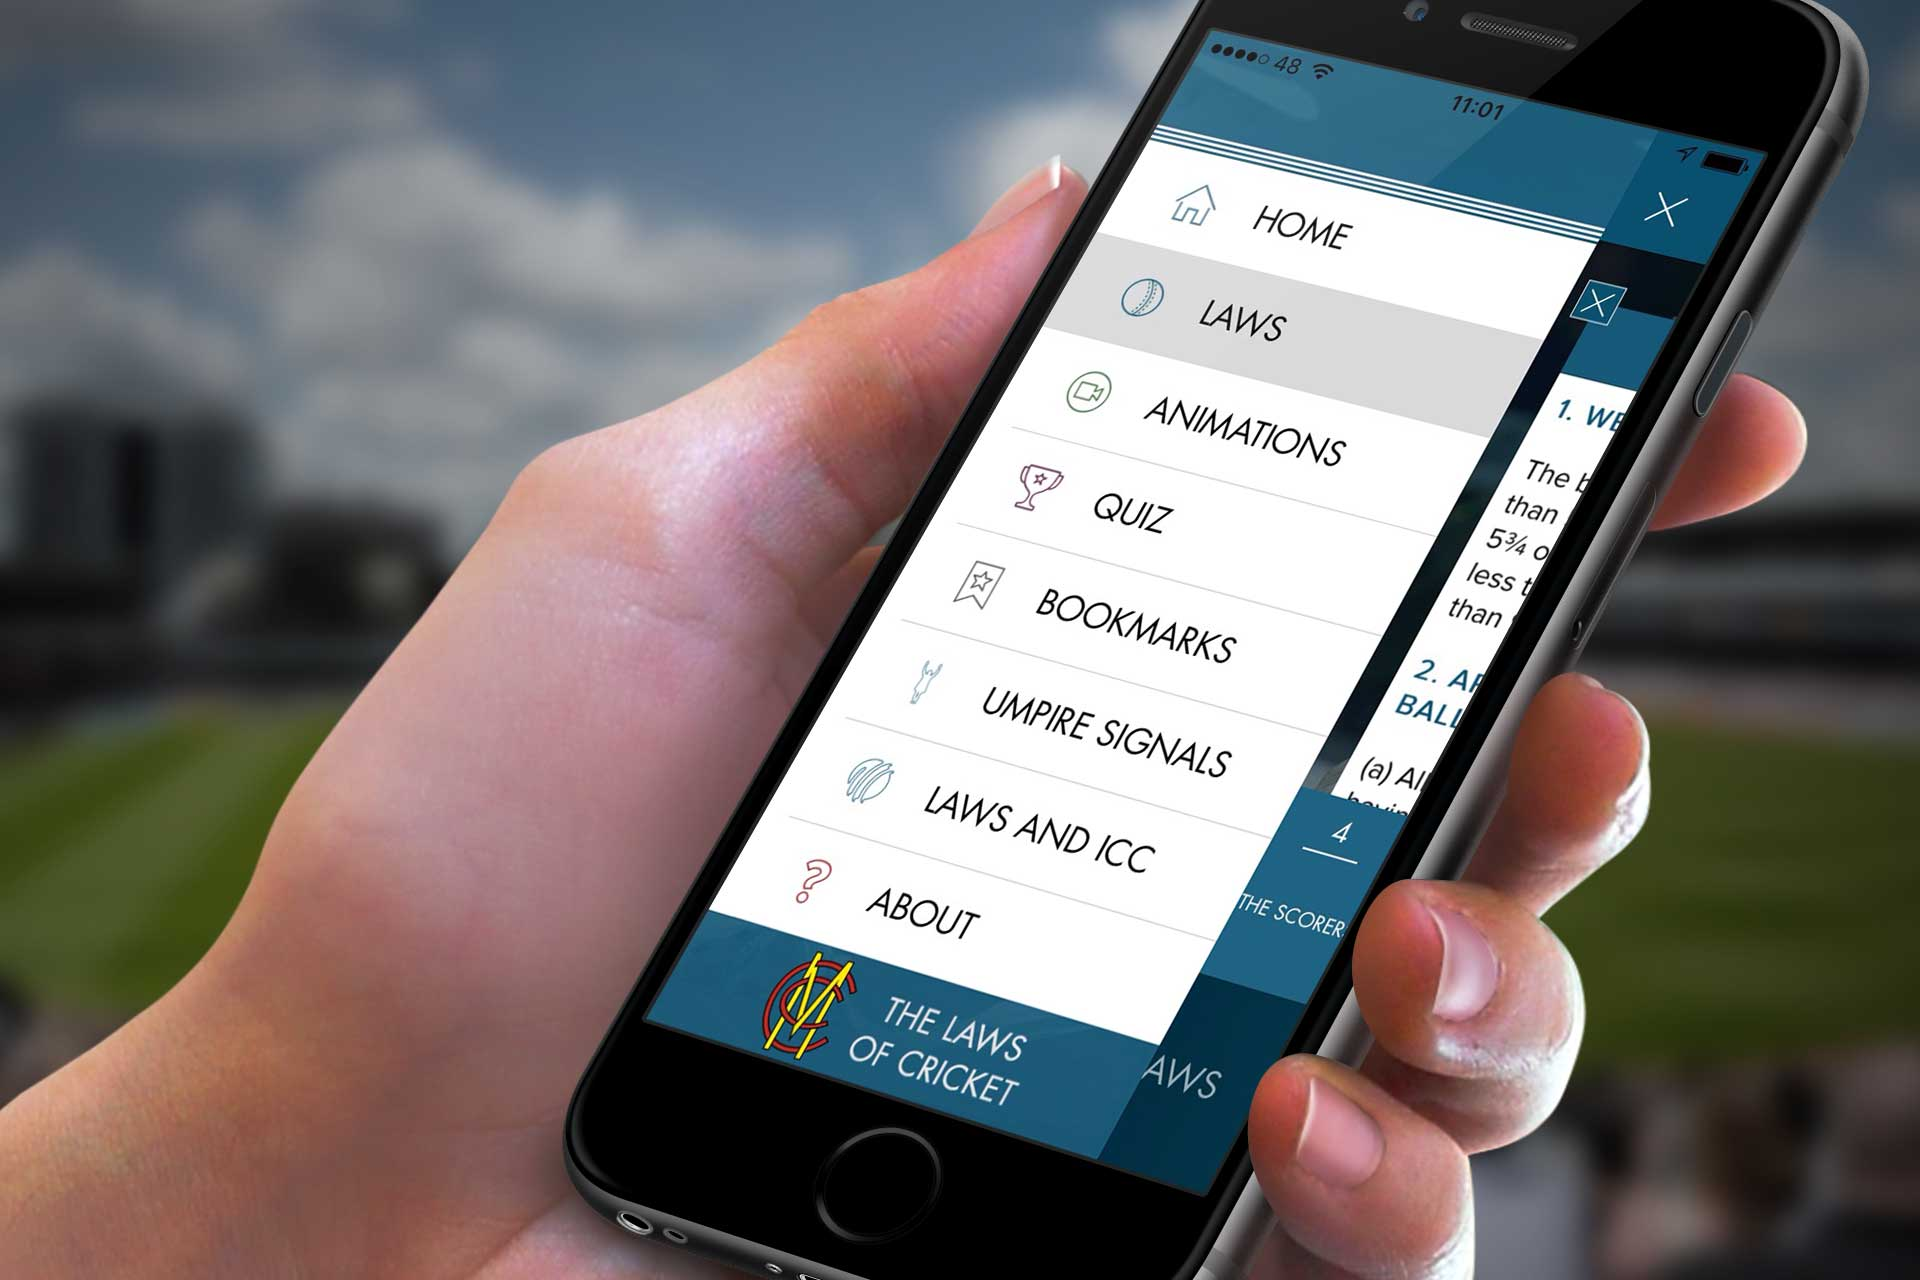 MCC publishes Laws of Cricket app for smartphones [Sports]